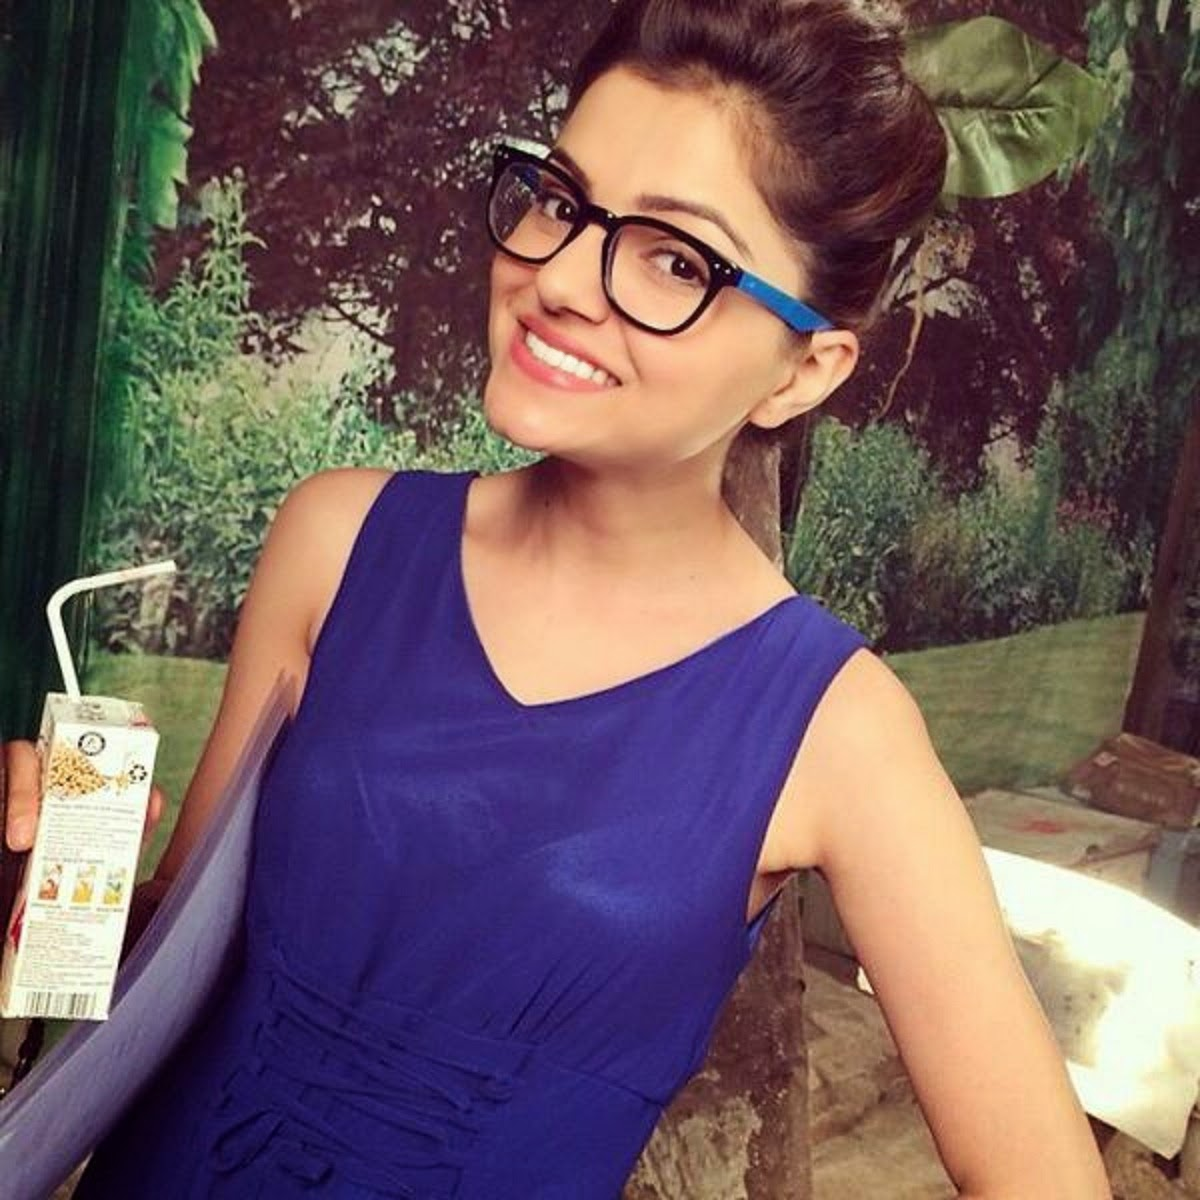 Czeshop Images Rubina Dilaik In Facebook